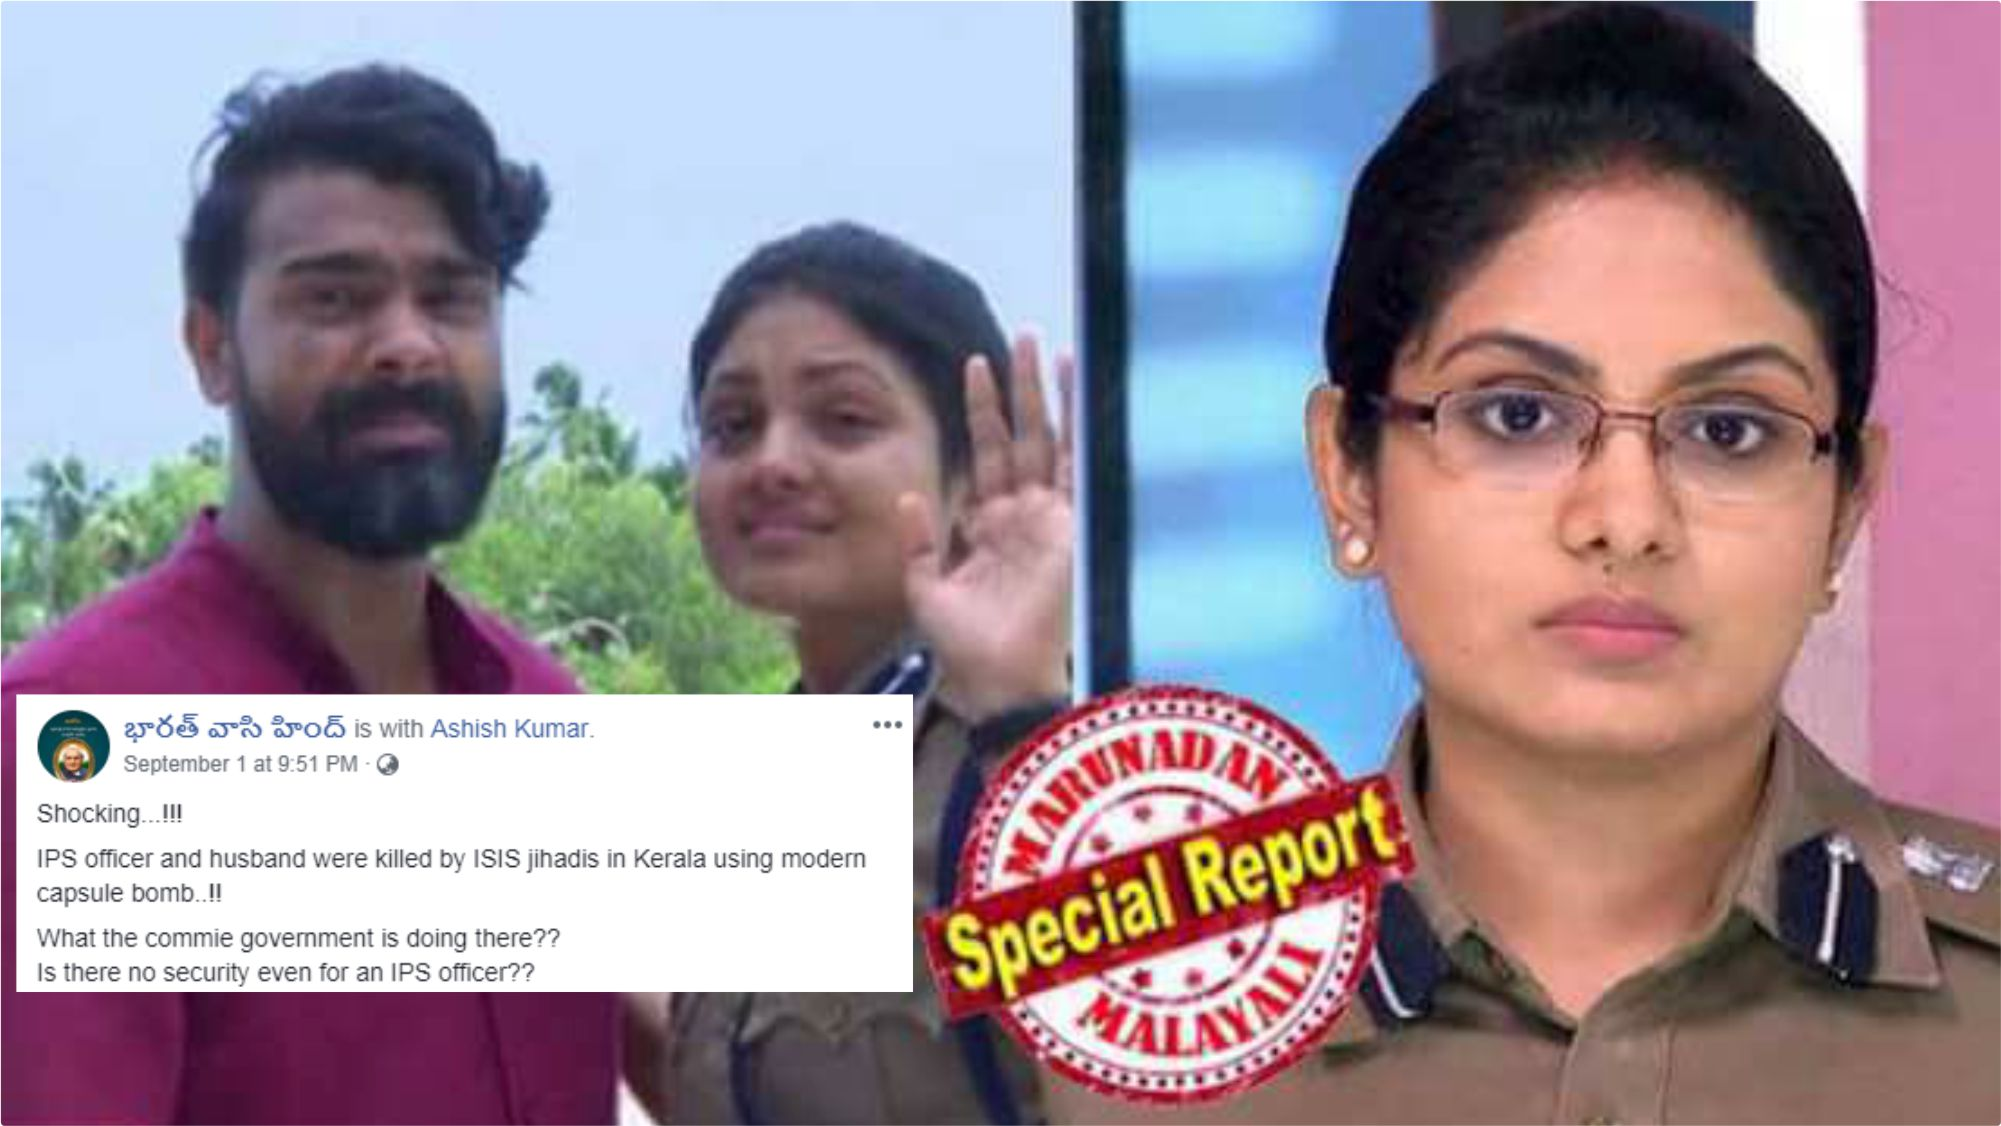 A scene from a TV serial is used claiming an IPS officer is